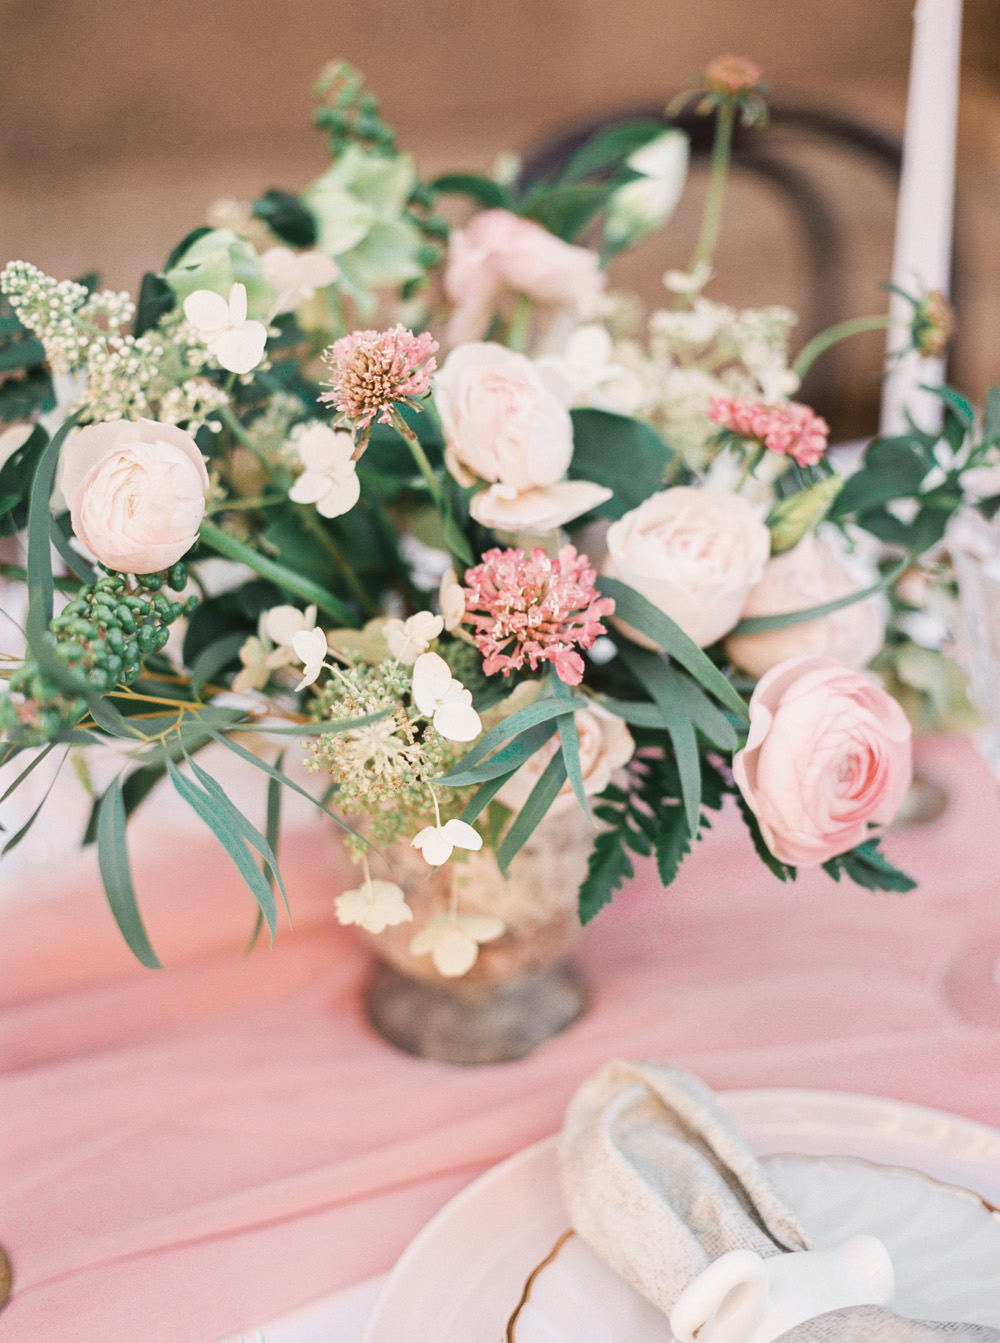 Blush centerpiece floral design | by Lara Lam photography